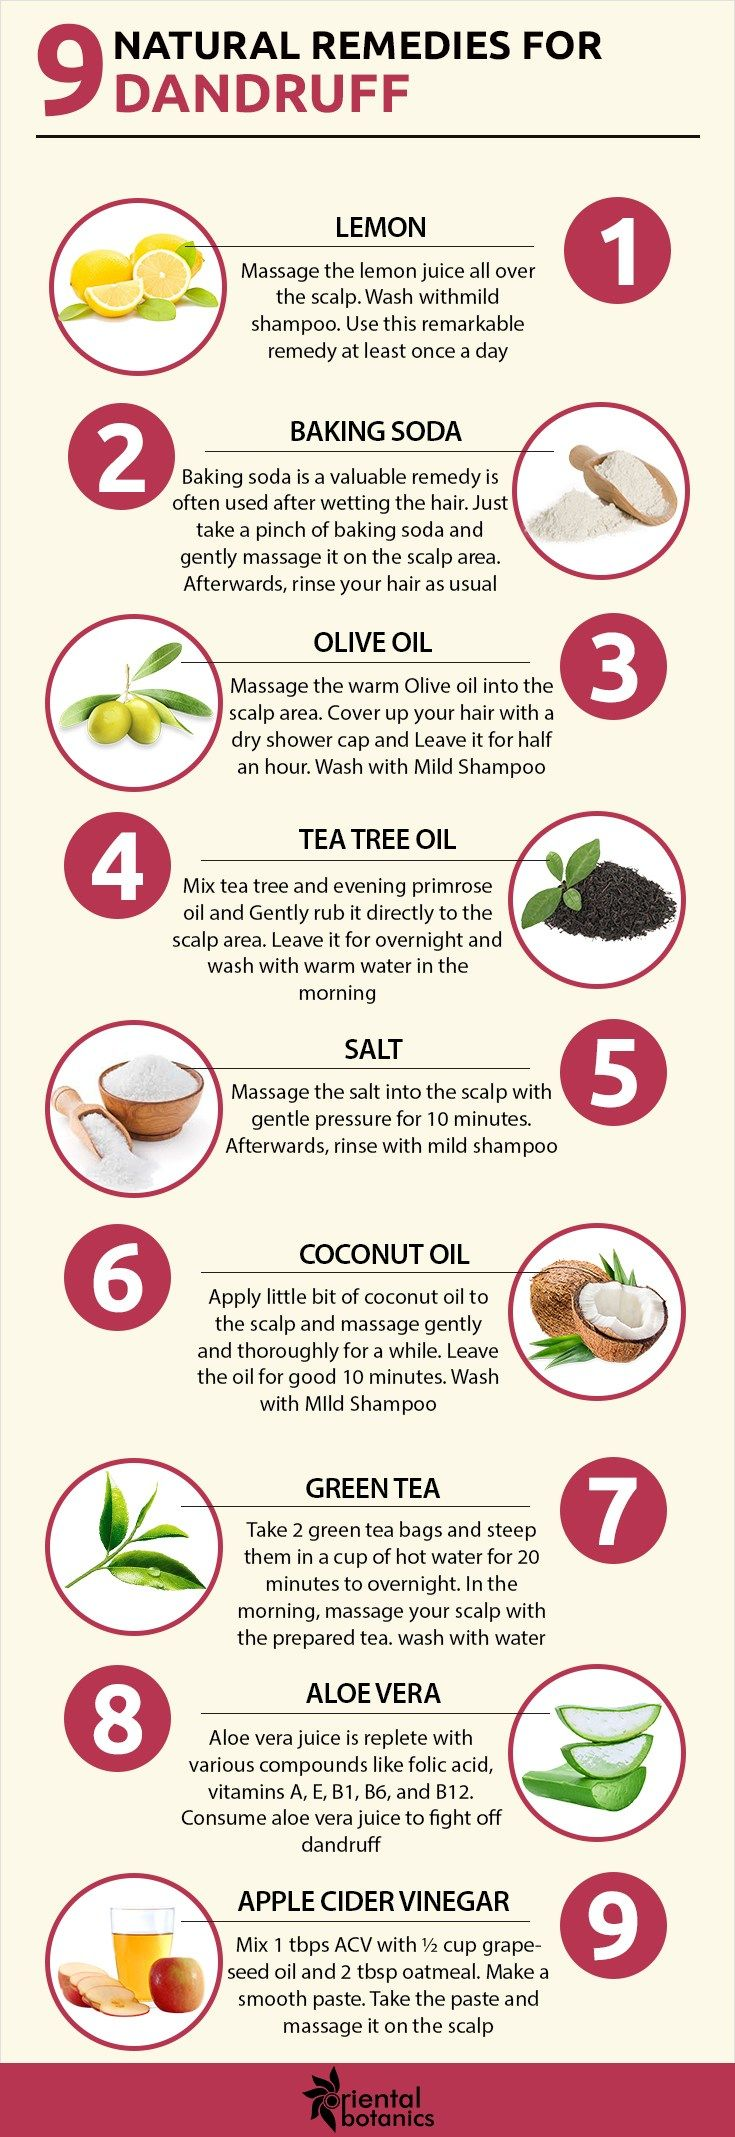 9 Natural Home Remedies To Get Rid Of Dandruff Oriental Botanics Home Remedies For Dandruff Dandruff Remedy Natural Home Remedies